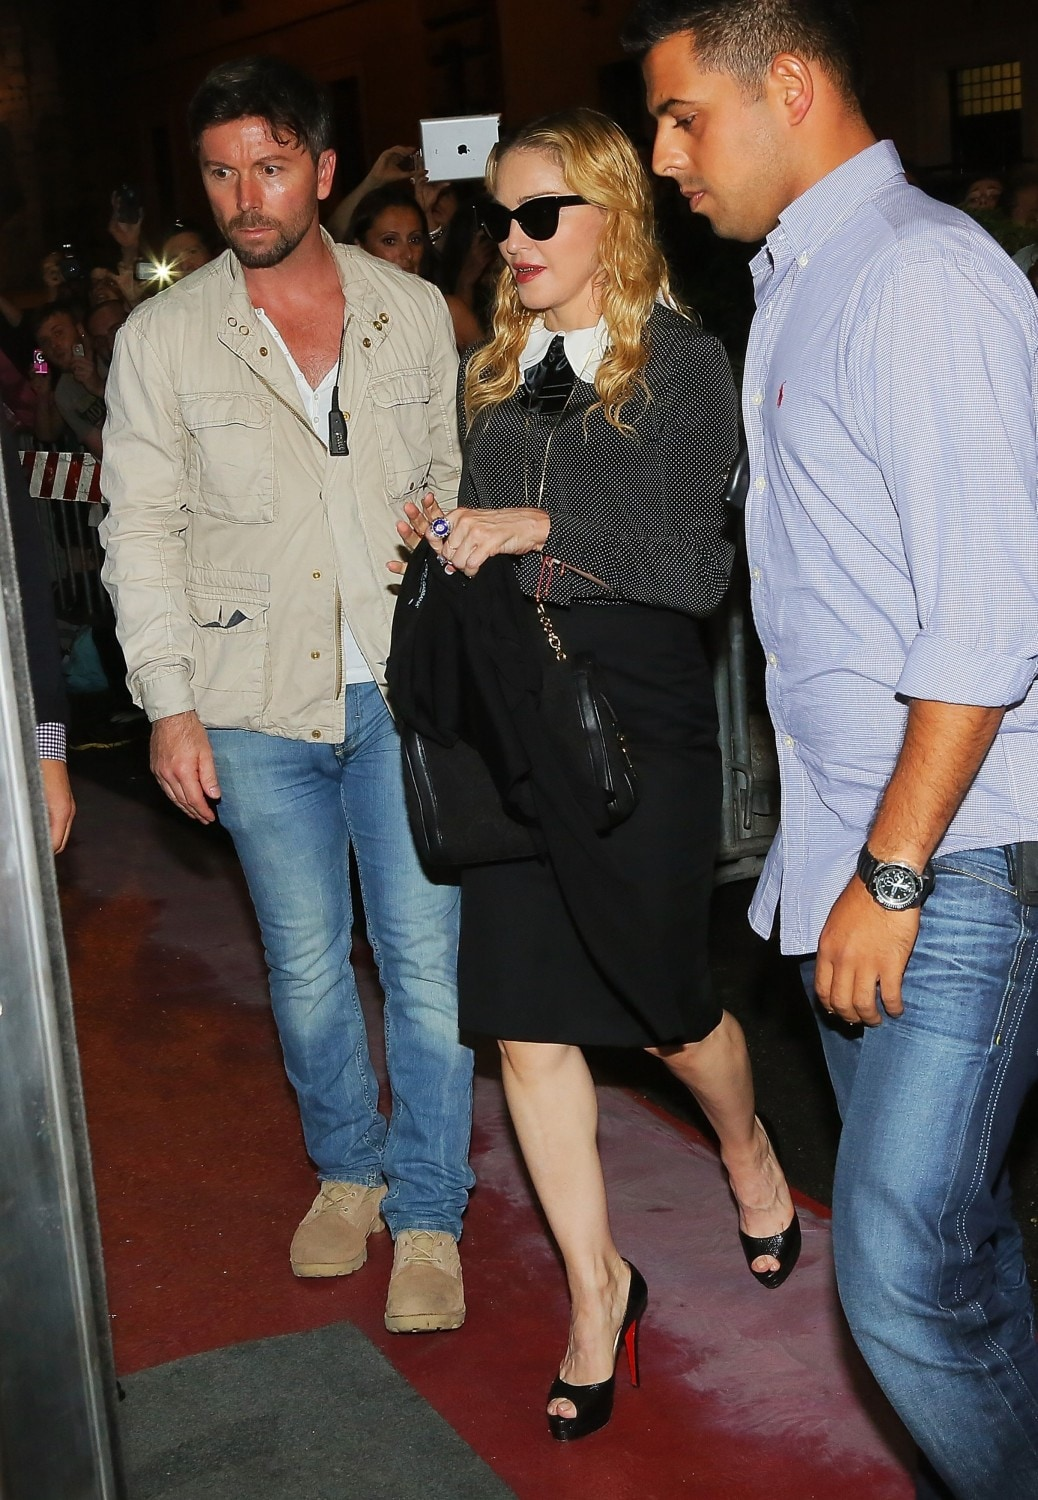 20130821-pictures-madonna-hard-candy-fitness-center-rome-03